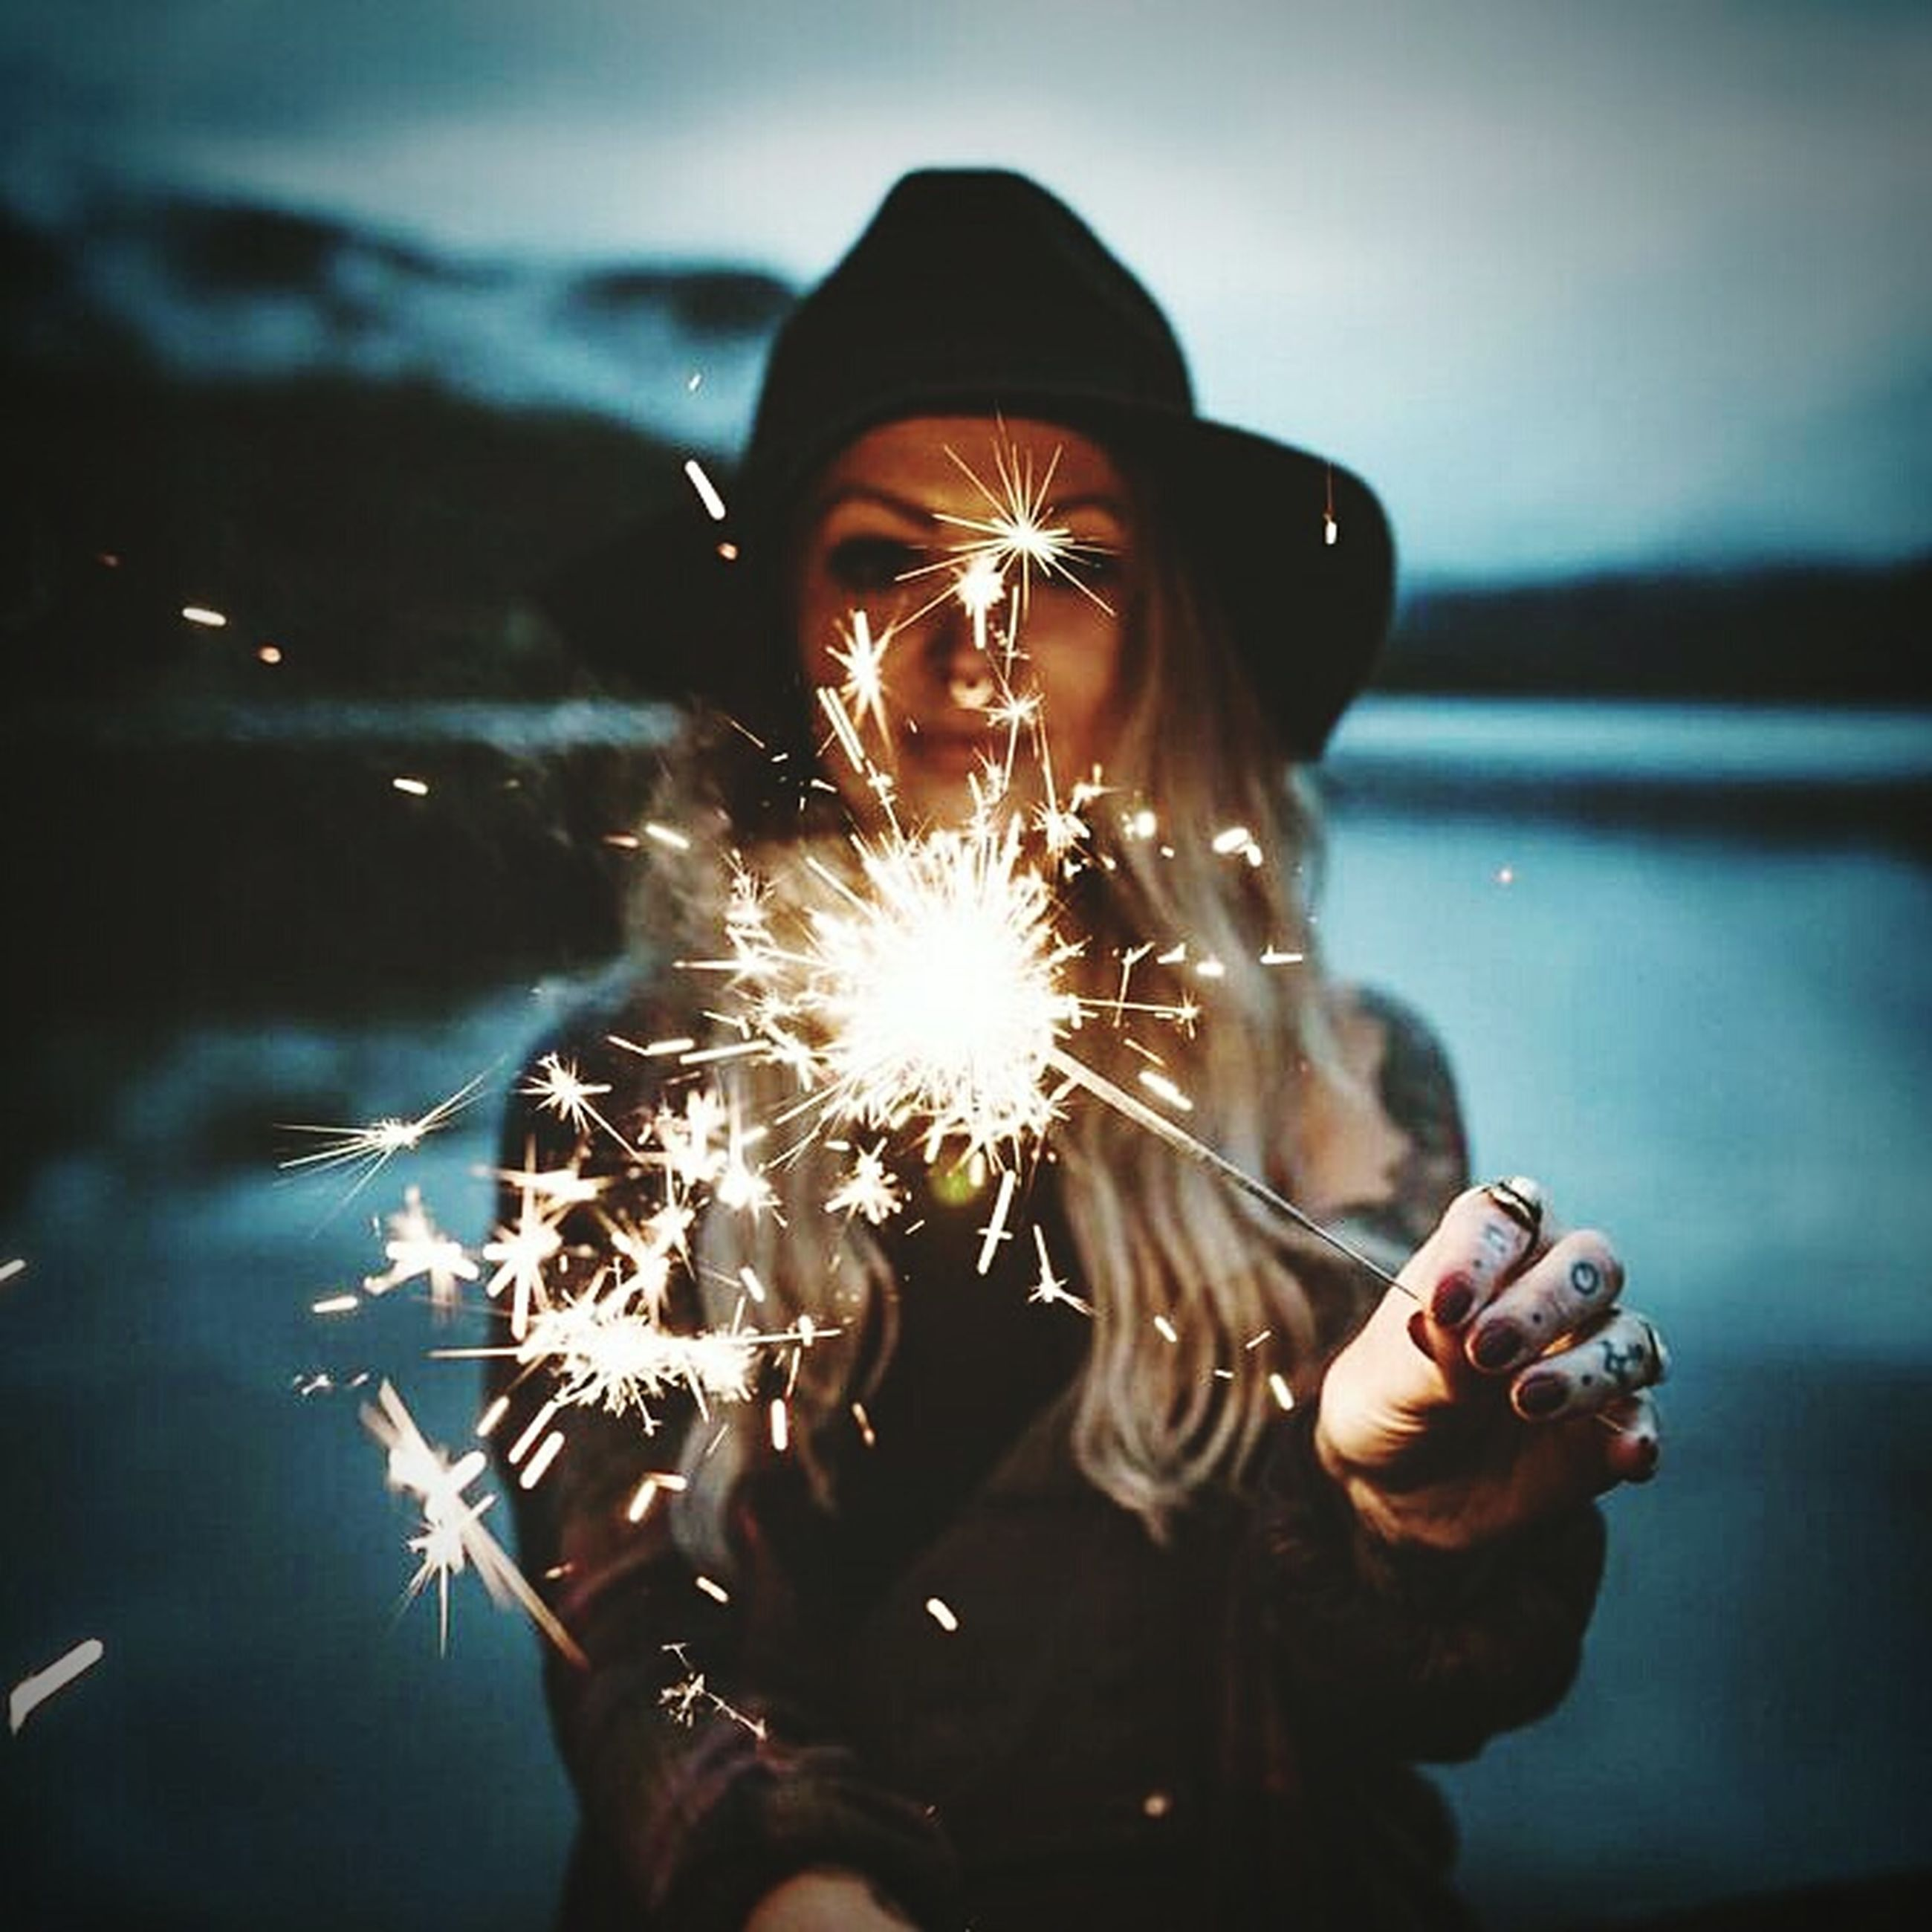 one person, holding, real people, sparkler, firework - man made object, lifestyles, motion, outdoors, women, illuminated, young women, young adult, close-up, human hand, sky, adult, day, people